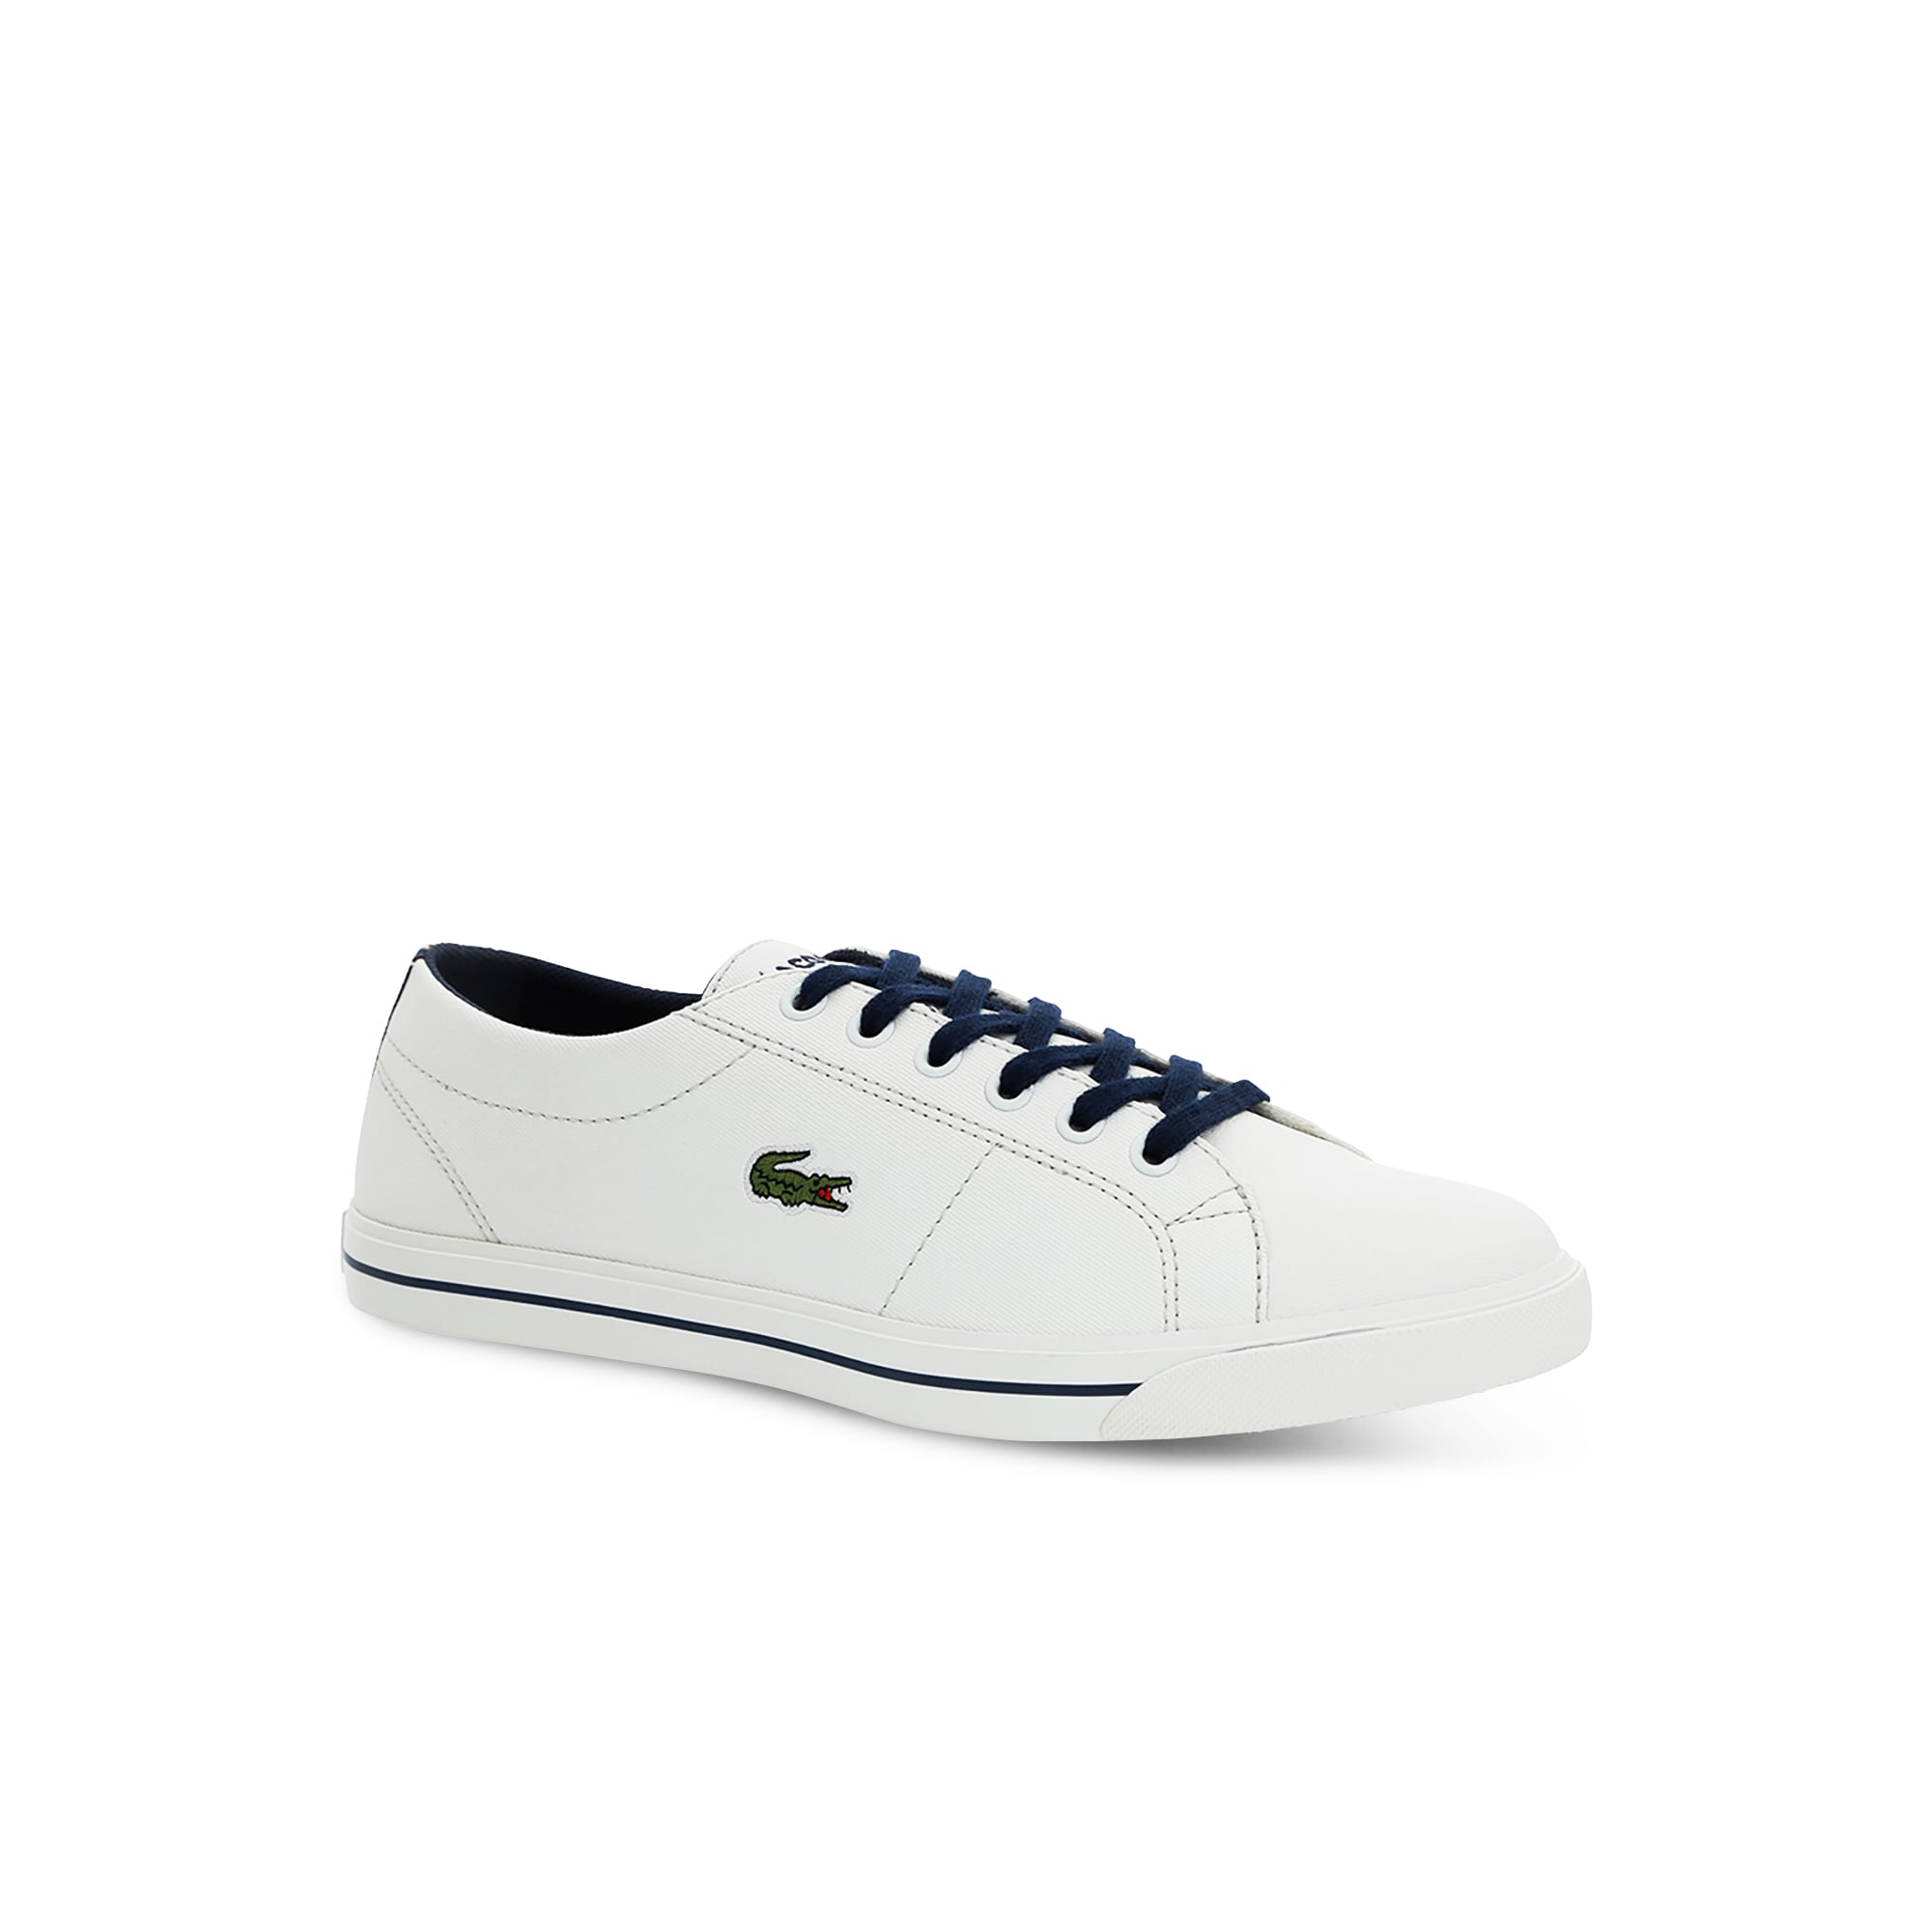 46f20ffc152 Chaussures Fille